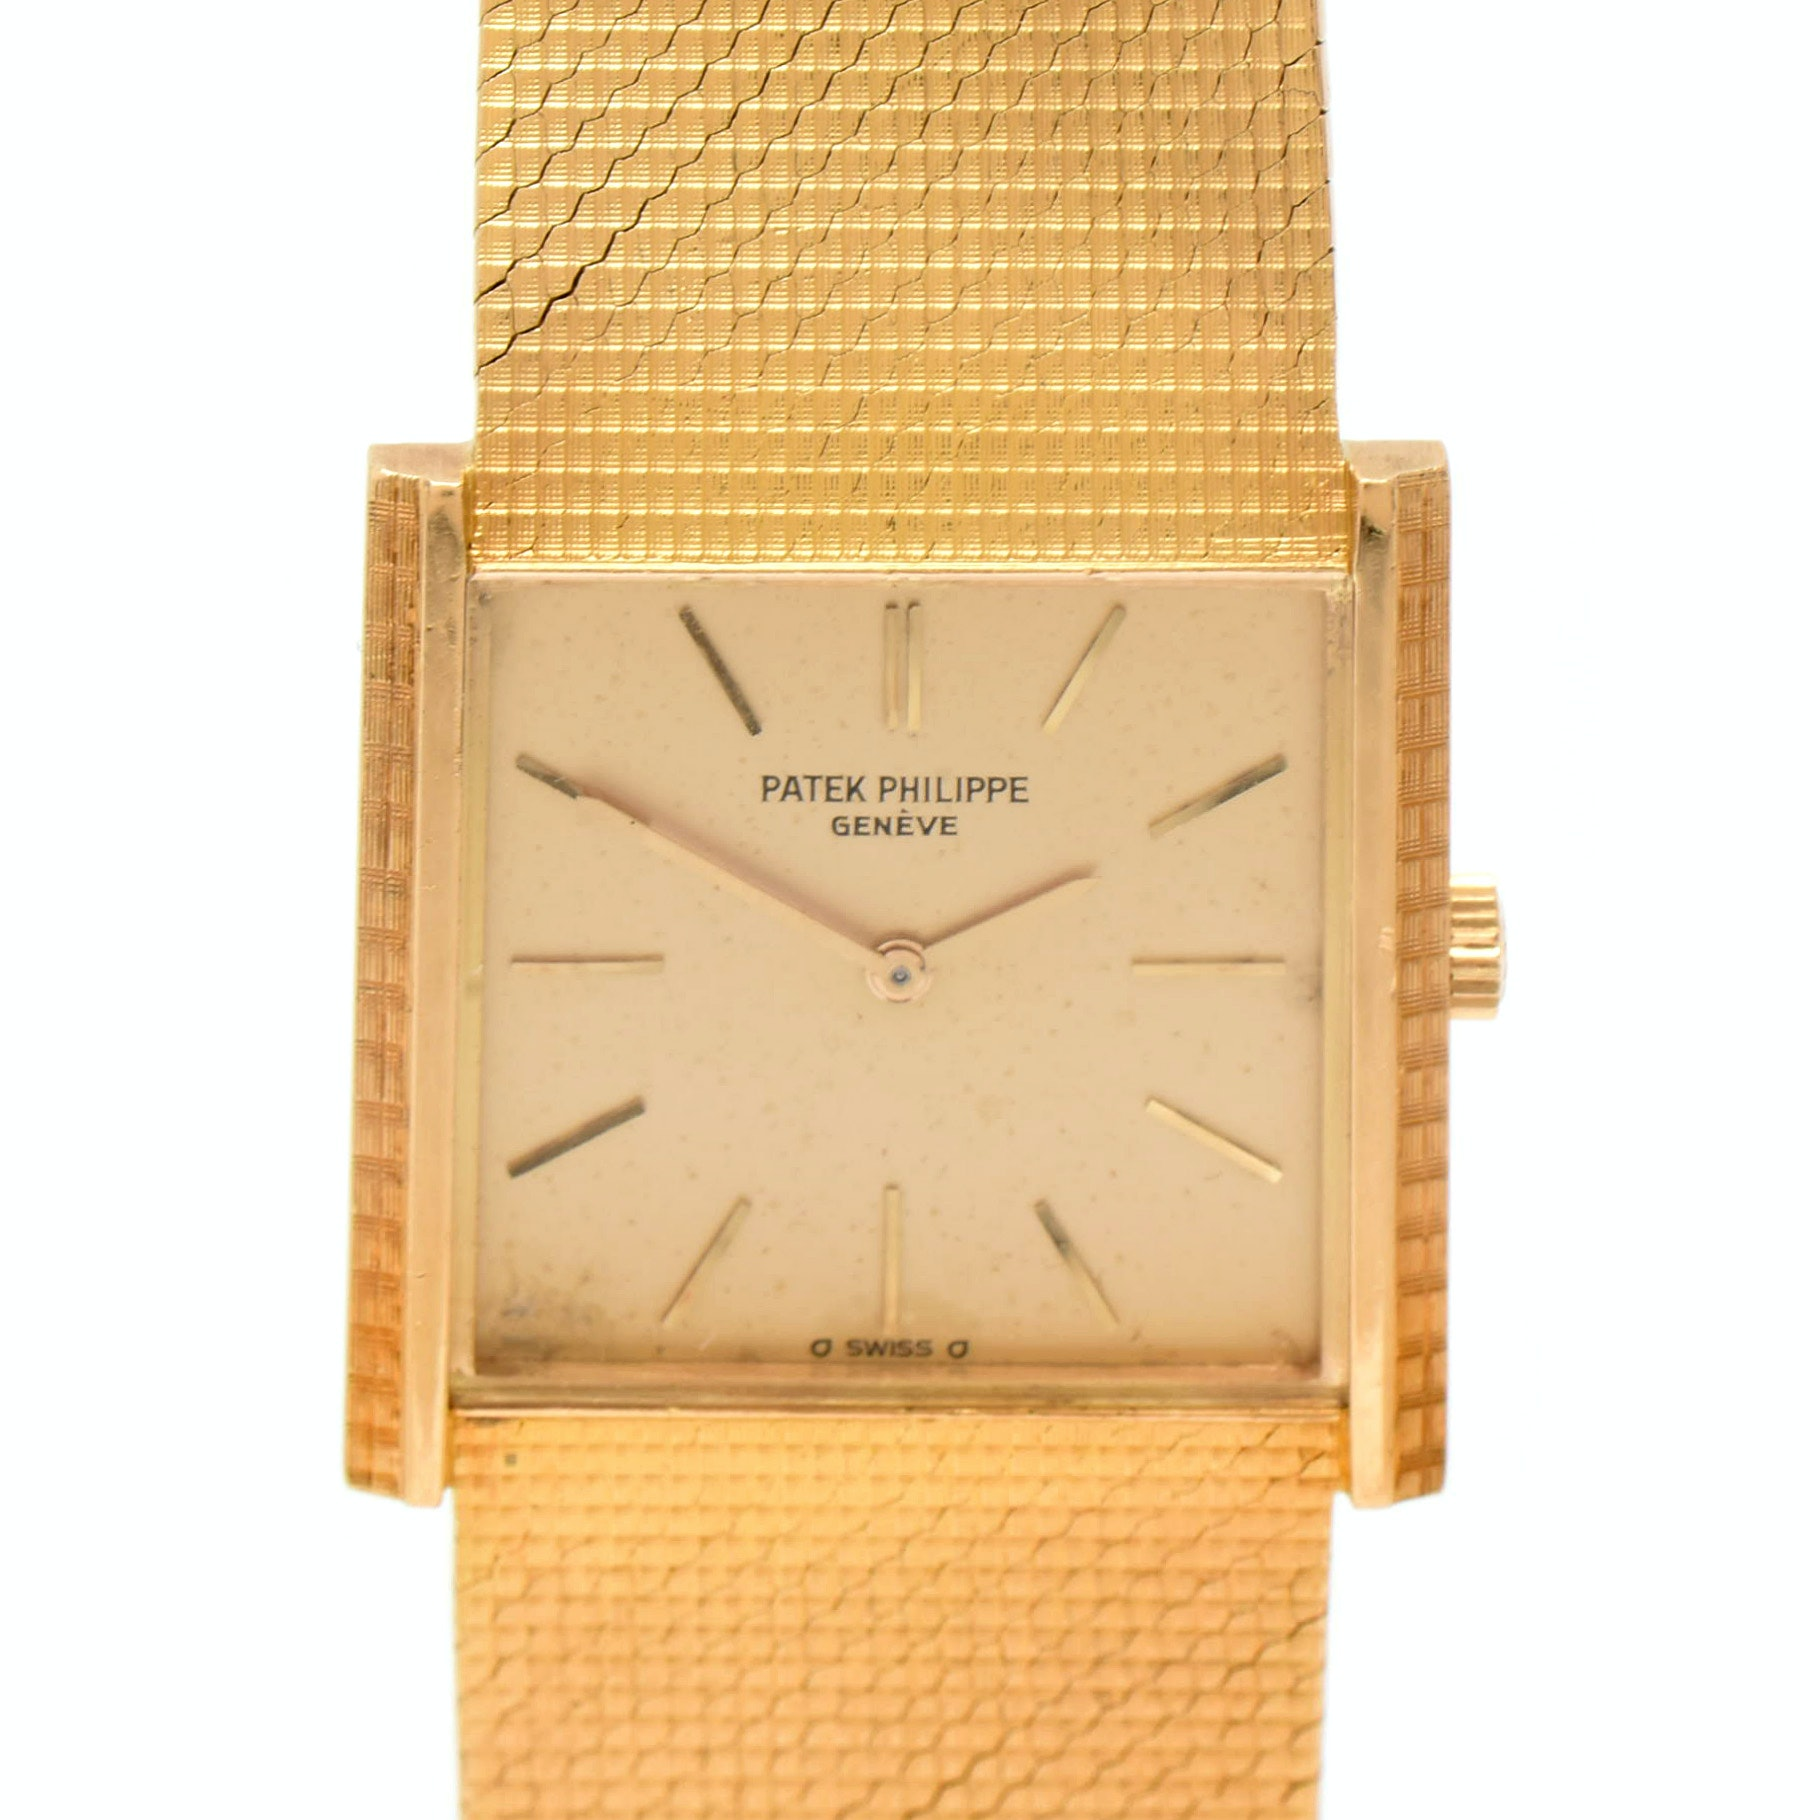 1970s Patek Philippe 18K Yellow Gold Square Dial with Mesh Bracelet Wristwatch